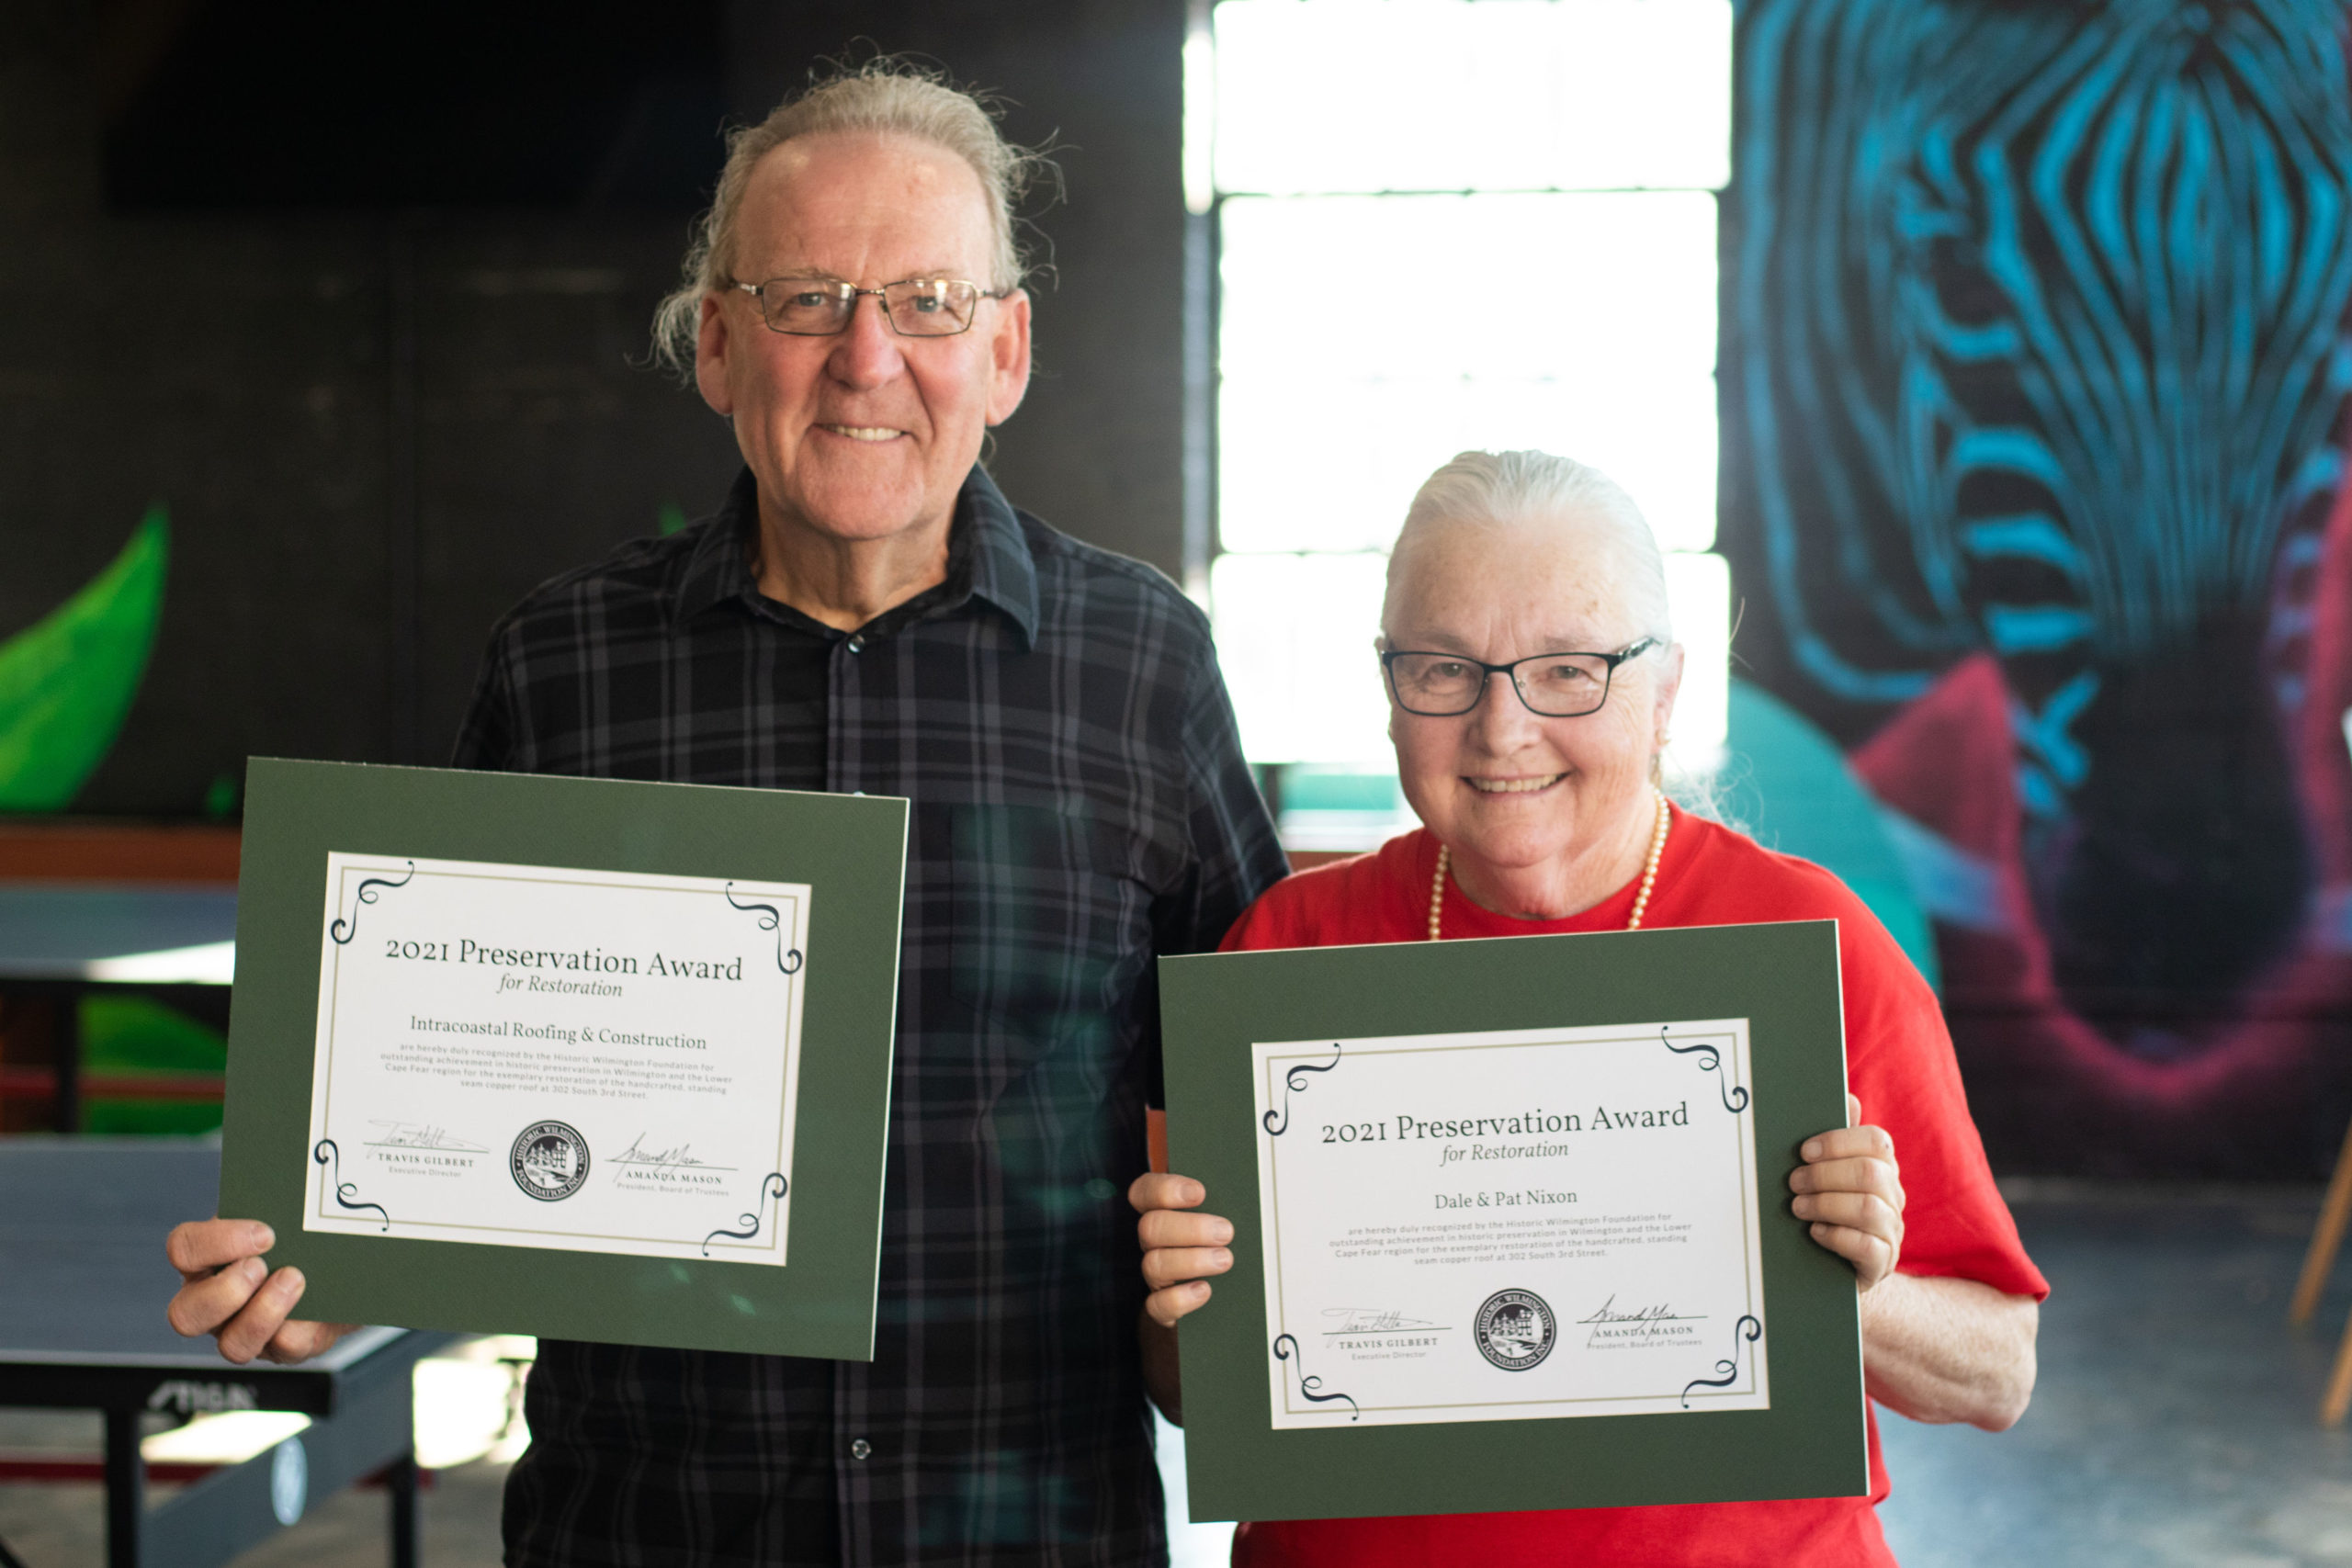 Dale & Pat Nixon and Intracoastal Roofing & Construction won a Preservation Award for their restoration of the Barry House's metal roof, which failed during Hurricane Florence.